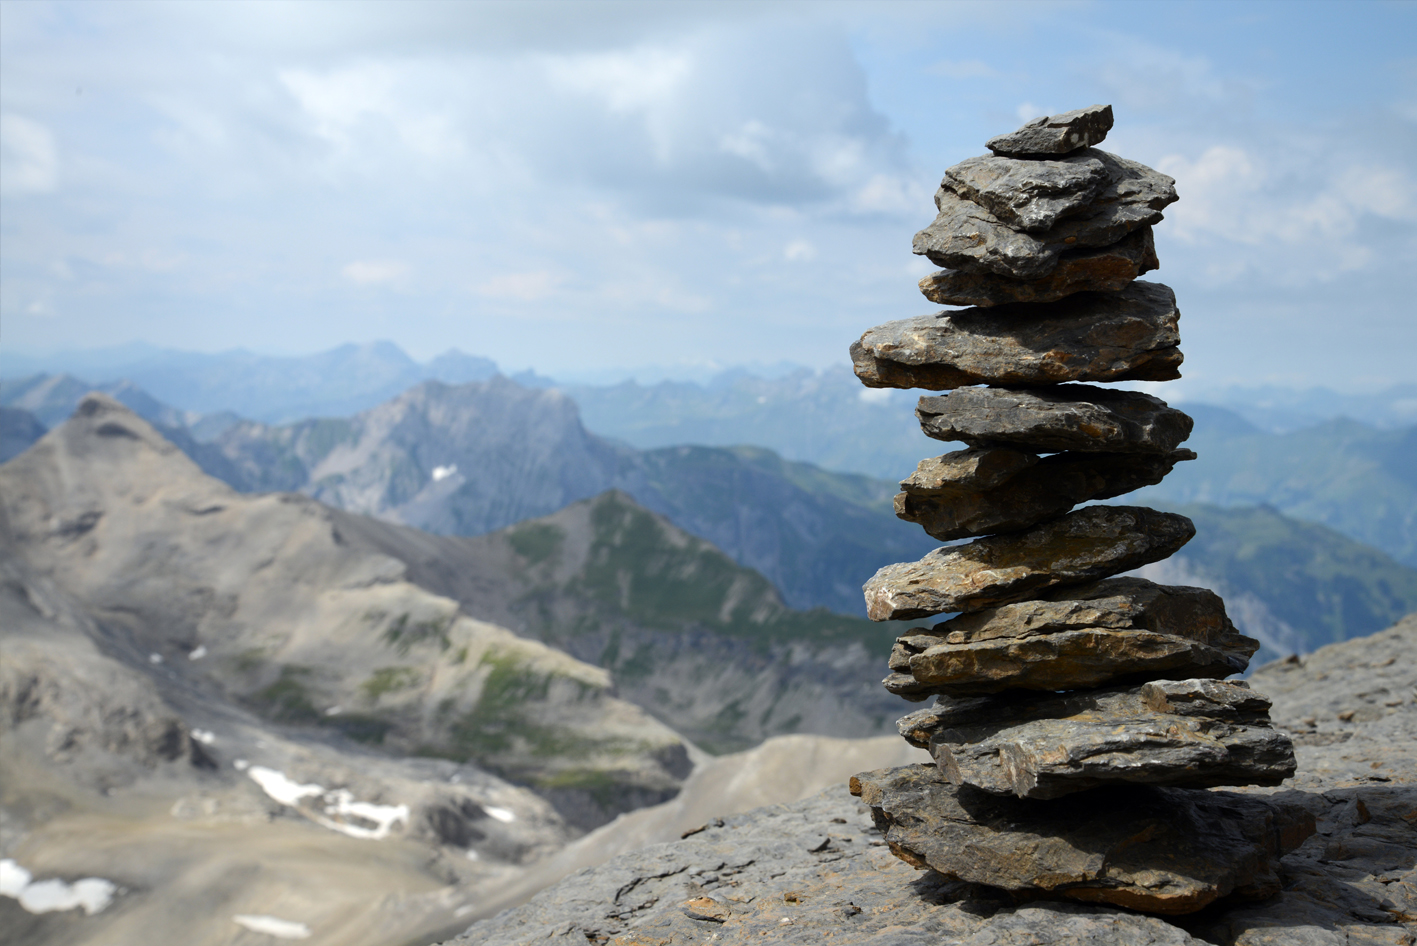 """The word """"ebenezer"""" literally means stone of help. In biblical days, a pile of stones might be raised in a place where God had given a prophetic word or a victory. On many mountain trails, hikers still pile rocks to serve as landmarks when the ground is too hard and barren to support other trail markings. These modern ebenezers help hikers get from one resting place to another.    These thoughts are offered in the hope they can help mark a path from Sunday to Sunday."""